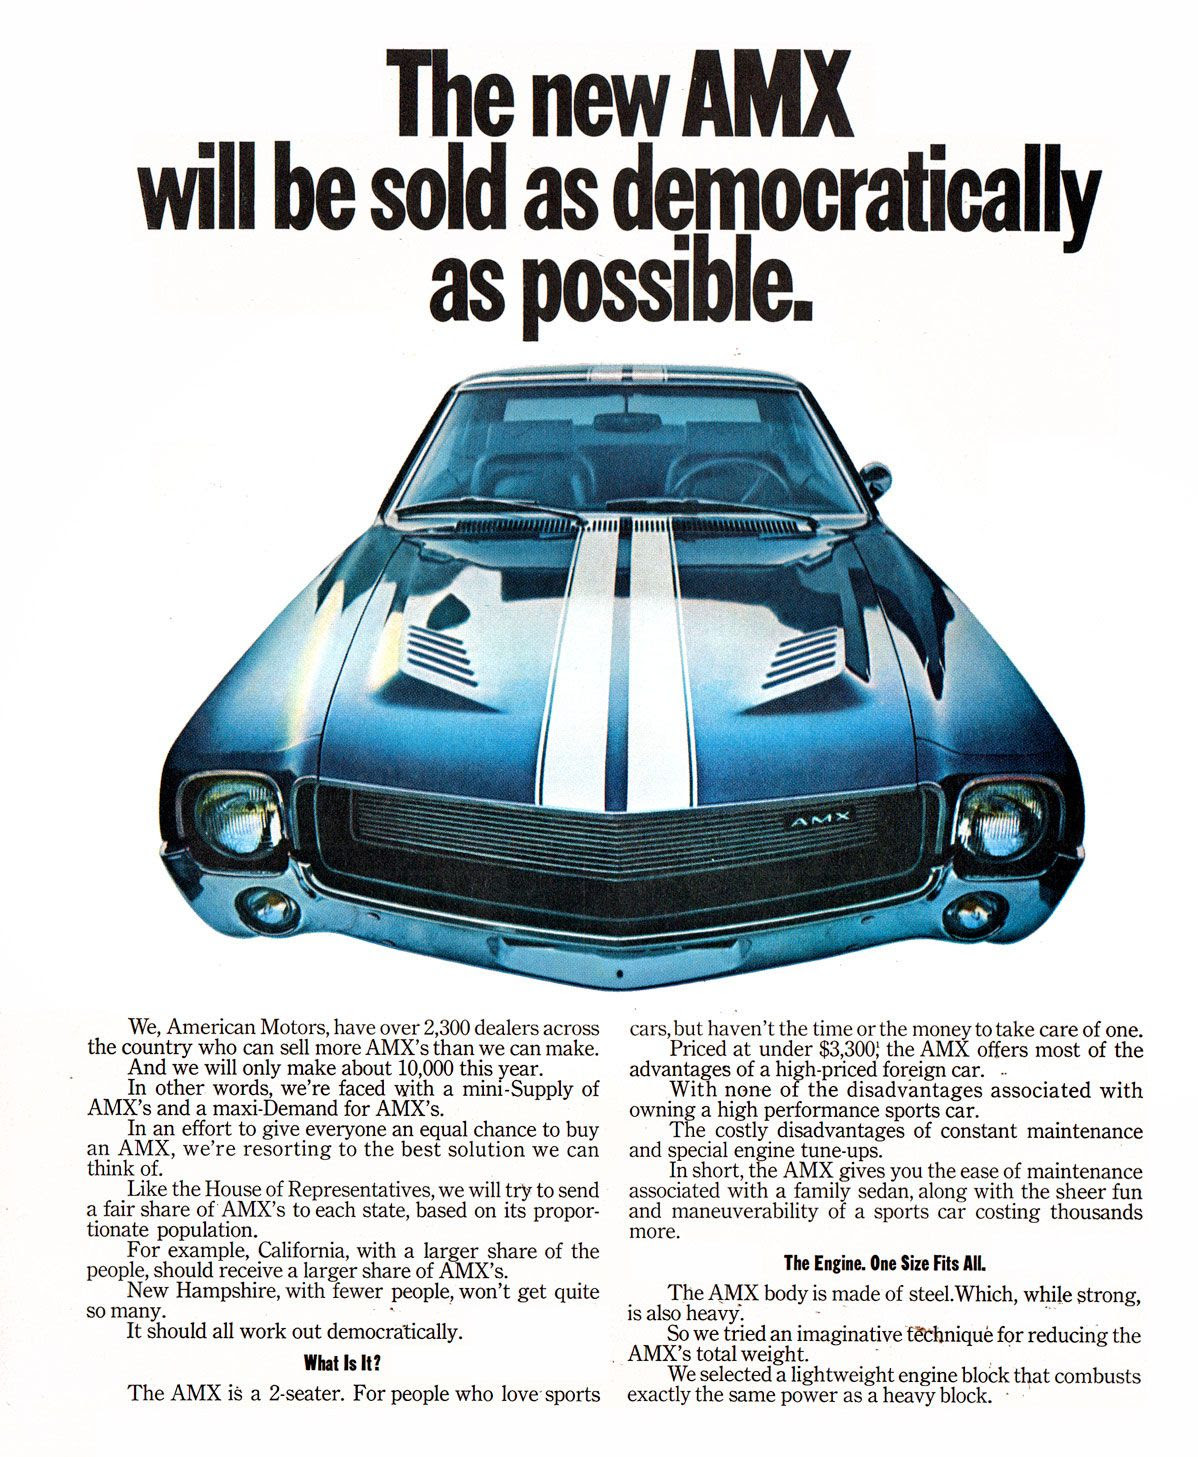 The new AMX will be sold as democratically as possible.  We, American Motors, have over 2,300 dealers across the country who can sell more AMX's than we can make. And we will only make about 10,000 this year. In other words, we're faced with a mini-Supply of AMX's and a maxi-Demand for AMX's. In an effort to give everyone an equal chance to buy an AMX, we're resorting to the best solution we can think of. Like the House of Representatives, we will try to send a fair share of AMX's to each state, based on its propor-tionate population. For example, California, with a larger share of the people, should receive a larger share of AMX's. New Hampshire, with fewer people, won't get quite so many. It should all work out democratically. What Is It! The AMX is a 2-seater. For people who love sports  cars, but haven't the time or the money to take care of one. Priced at under $3,300: the AMX offers most of the advantages of a high-priced foreign car. . With none of the disadvantages associated with owning a high performance sports car. The costly disadvantages of constant maintenance and special engine tune-ups. In short, the AMX gives you the ease of maintenance associated with a family sedan, along with the sheer fun and maneuverability of a sports car costing thousands more.  The Engine. One Size Fits AIL The AMX body is made of steel.Which, while strong, is also heavy. So we tried an imaginative tethnique for reducing the AMX's total weight. We selected a lightweight engine block that combusts exactly the same power as a heavy block.